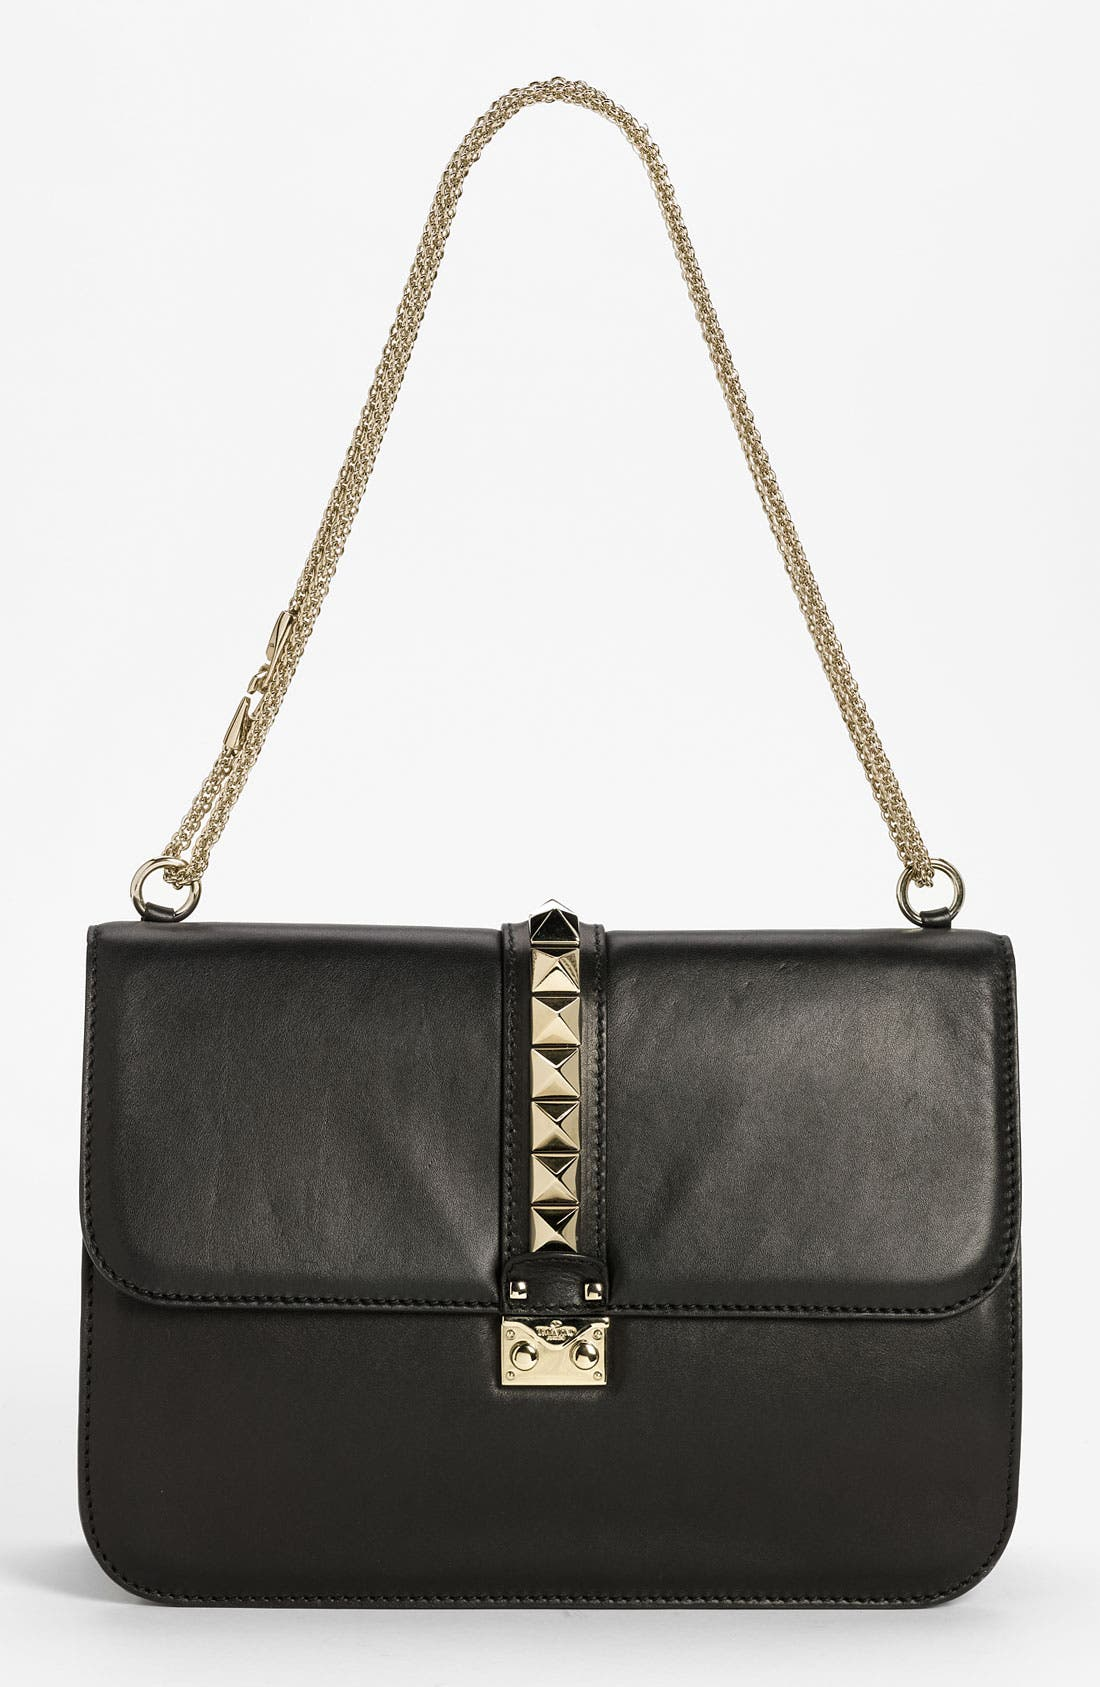 Alternate Image 1 Selected - Valentino 'Grande Lock' Leather Shoulder Bag